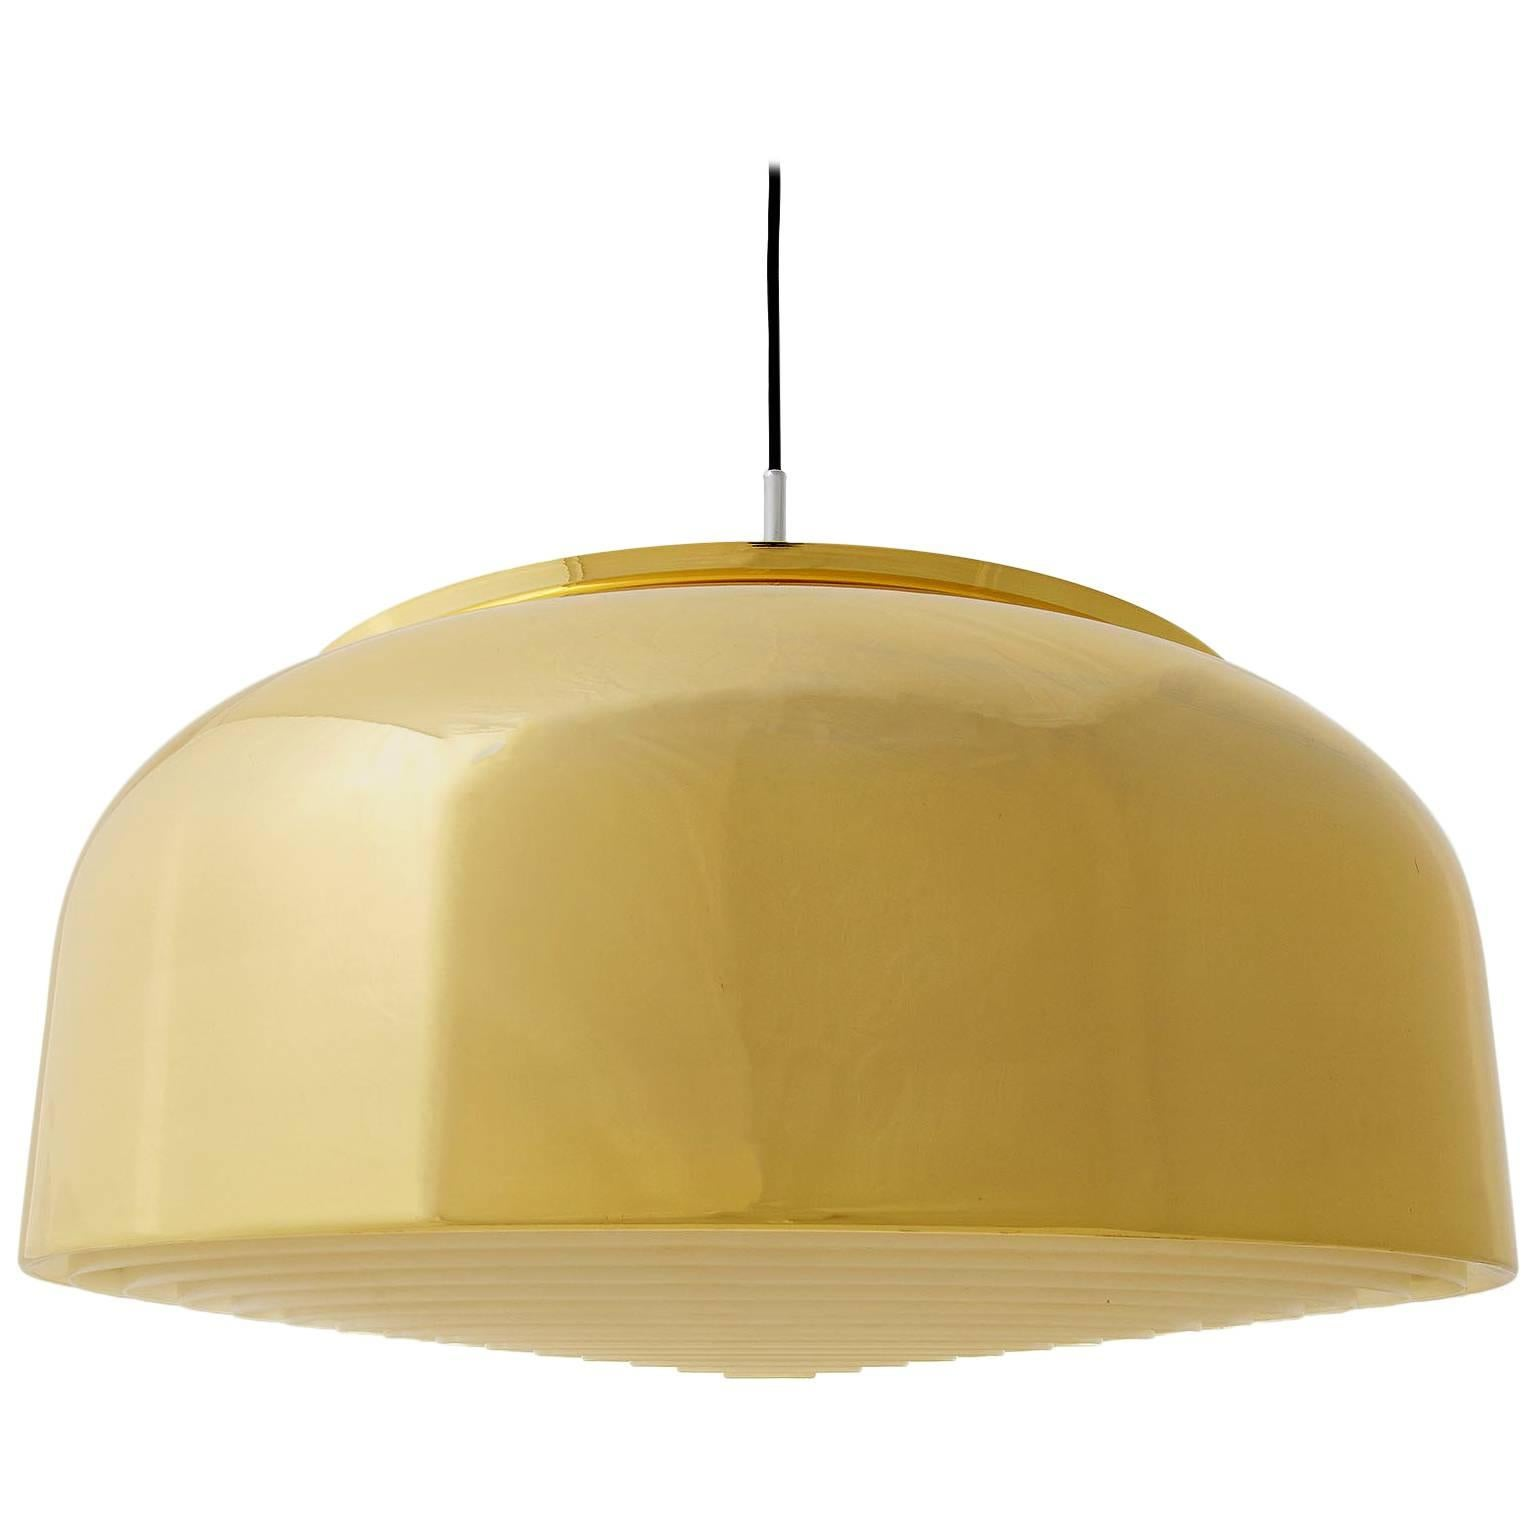 Brass Pendant Light Knubbling by Anders Pehrson for Ateljé Lyktan, Sweden, 1970s